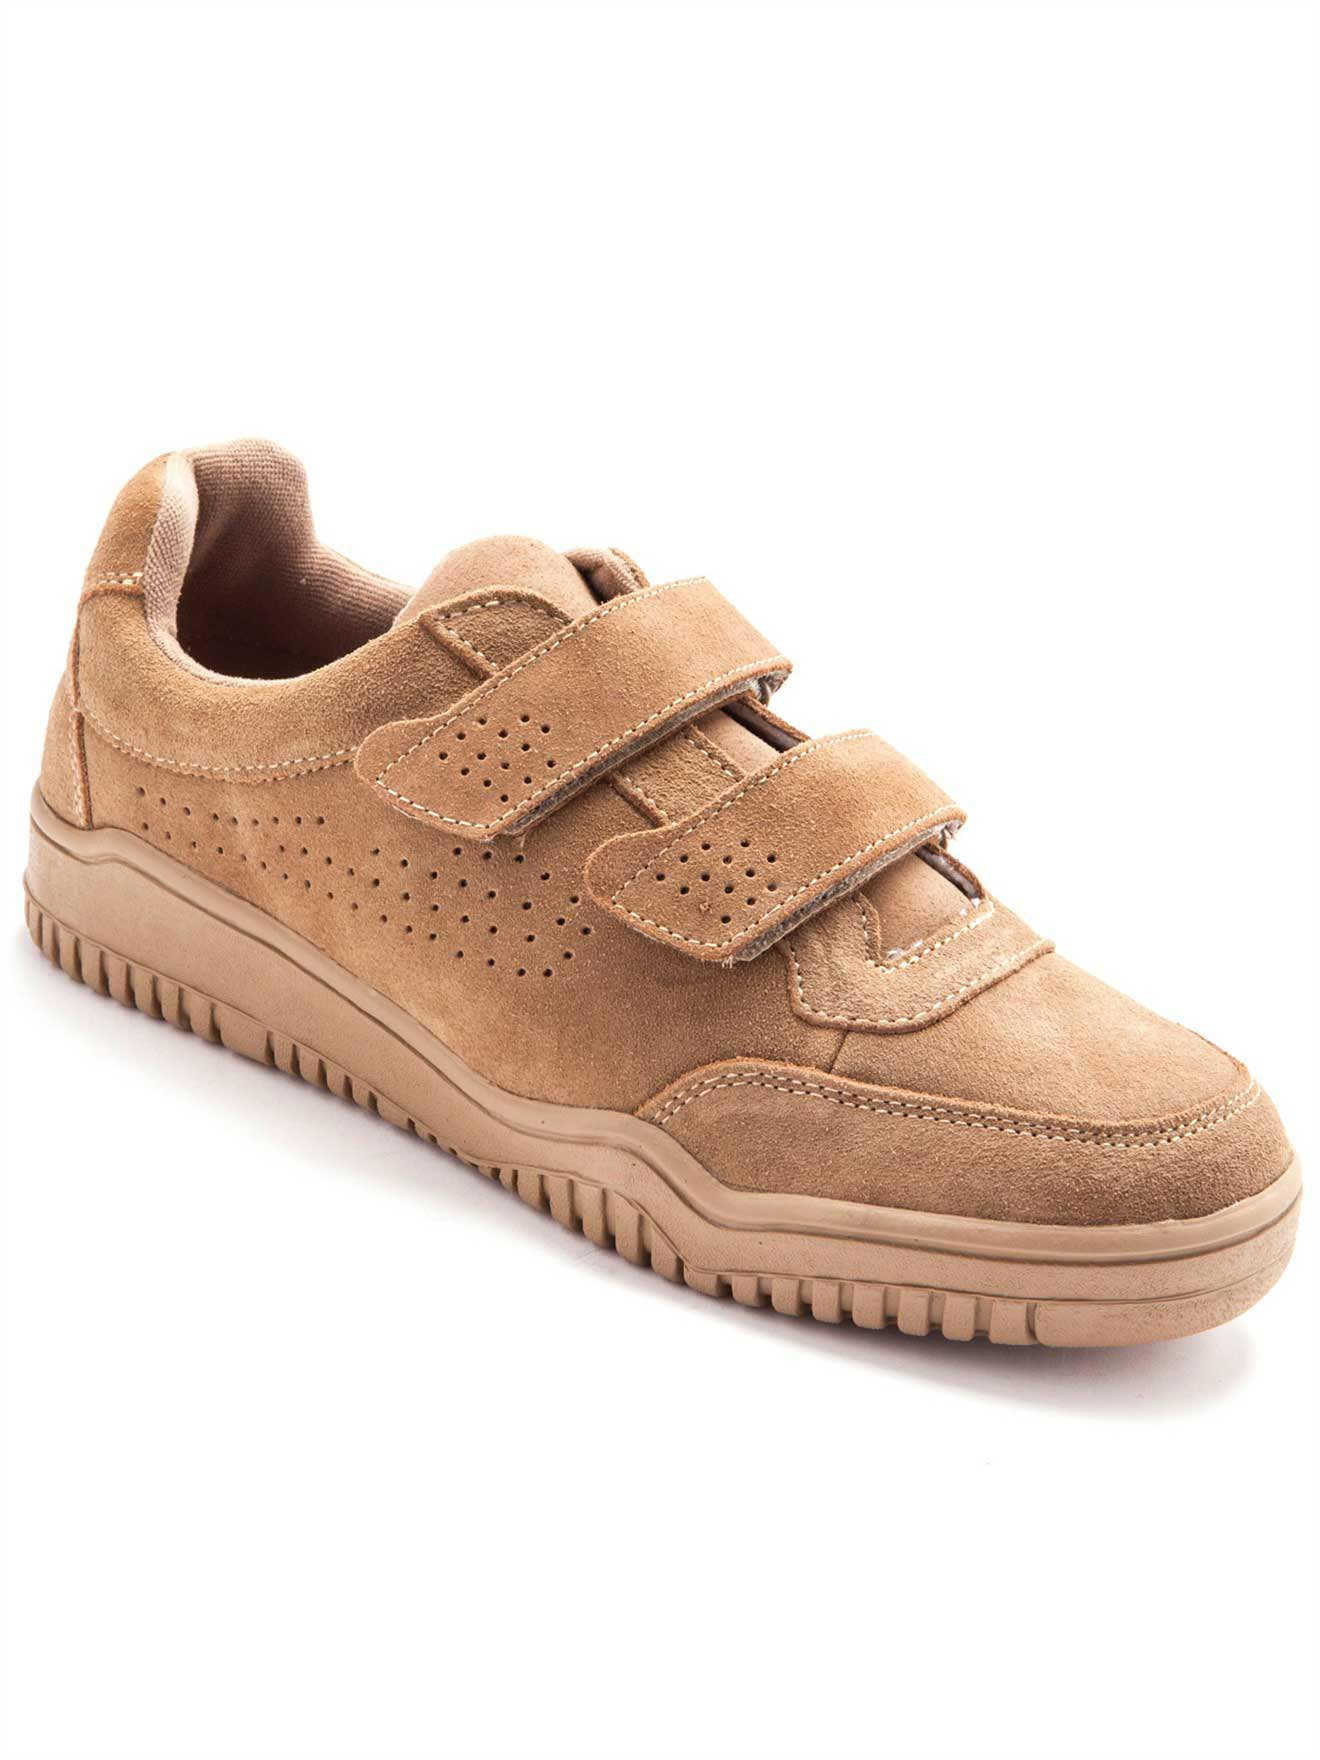 Chaussures Cuir Scratch Extra Larges Daxon